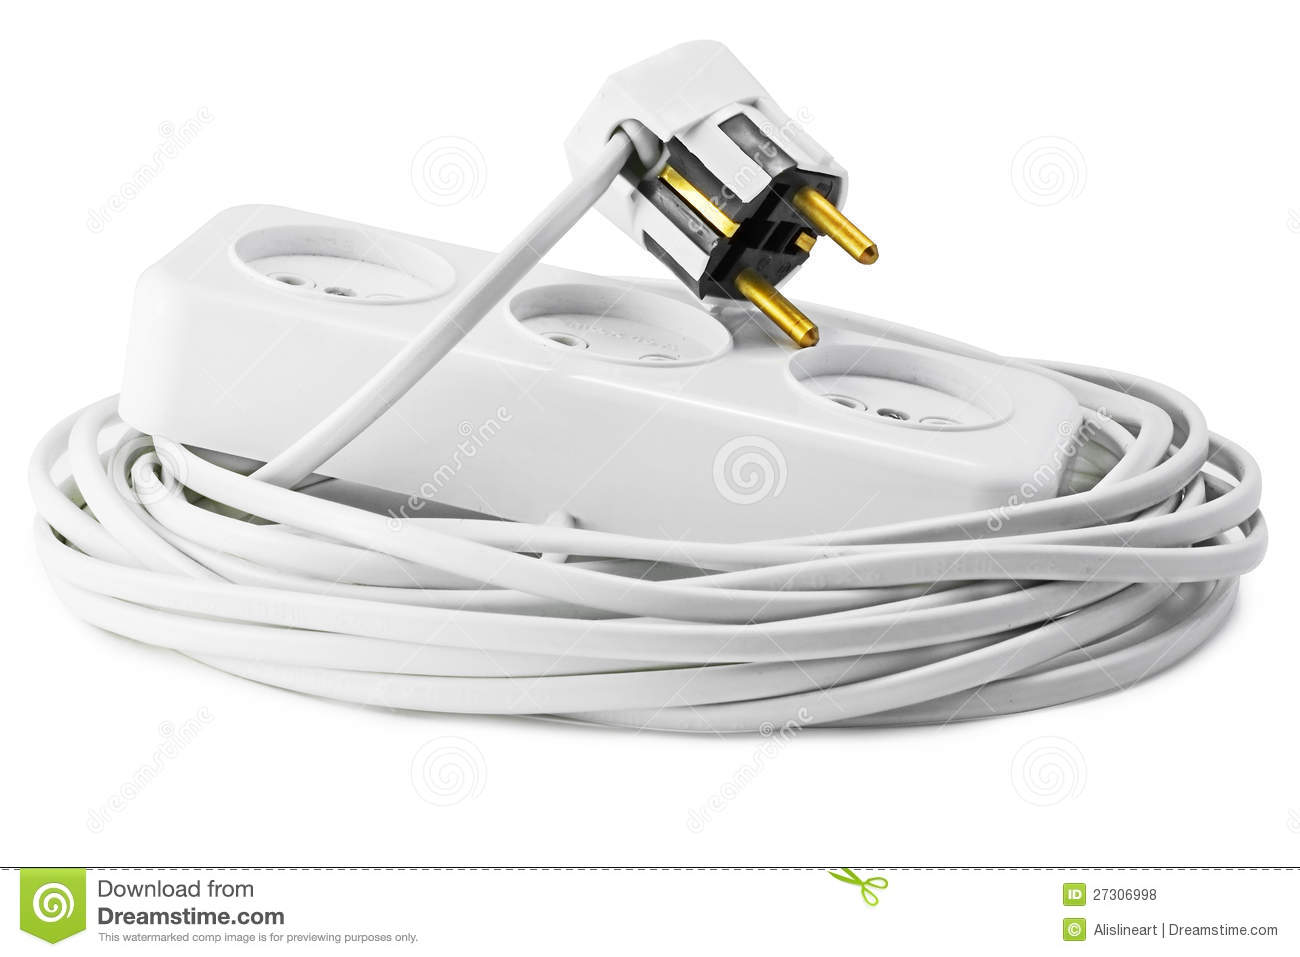 Extension Cord With Plugs And Socket Stock Photo - Image of tool ...